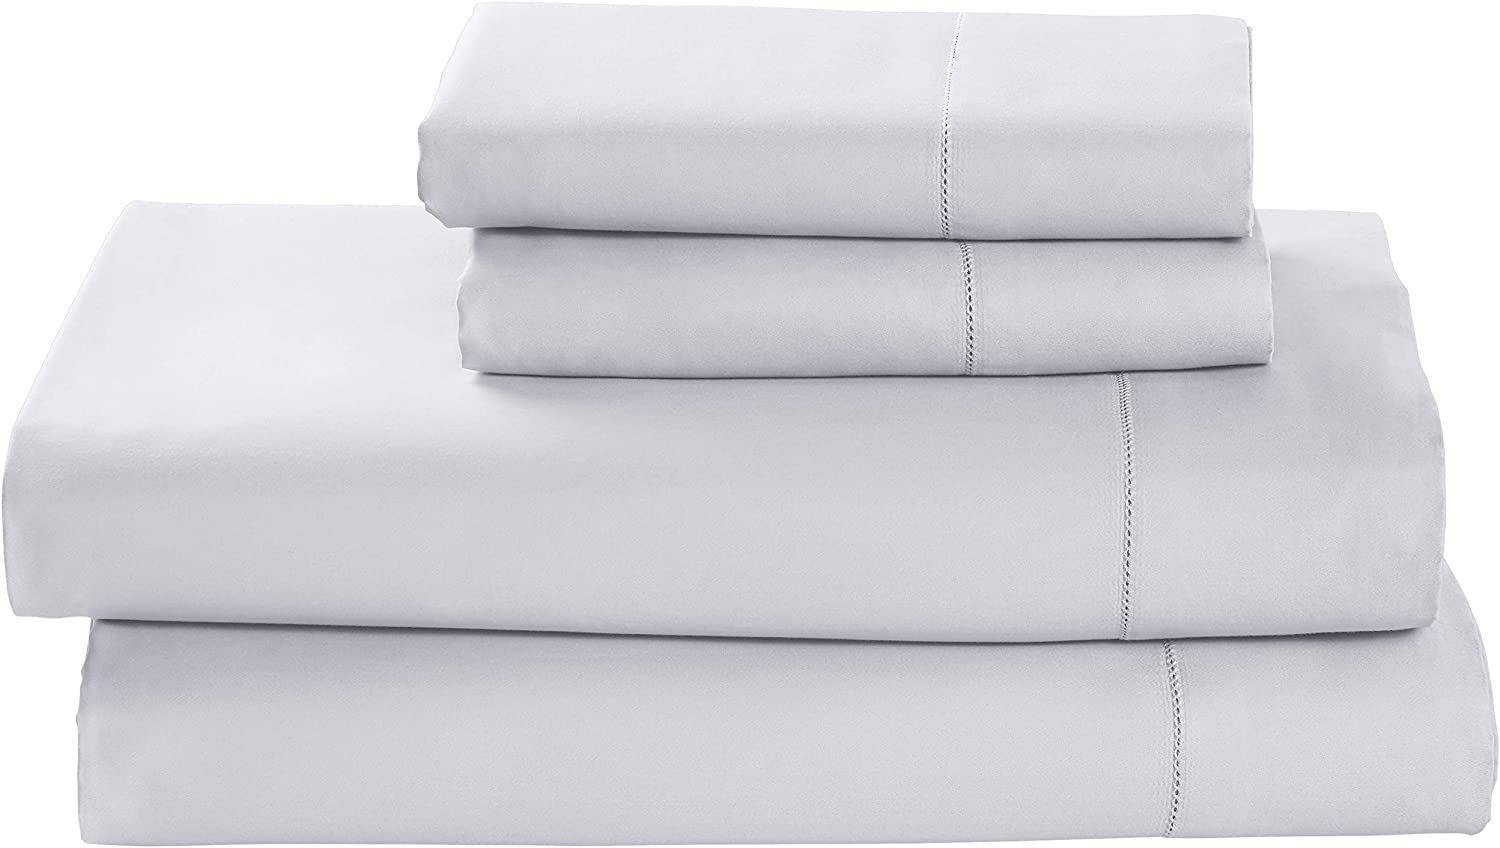 Amazon Brand – Stone & Beam 100% Supima Cotton Bed Sheet Set, Soft and Easy Care, Queen, Cloud